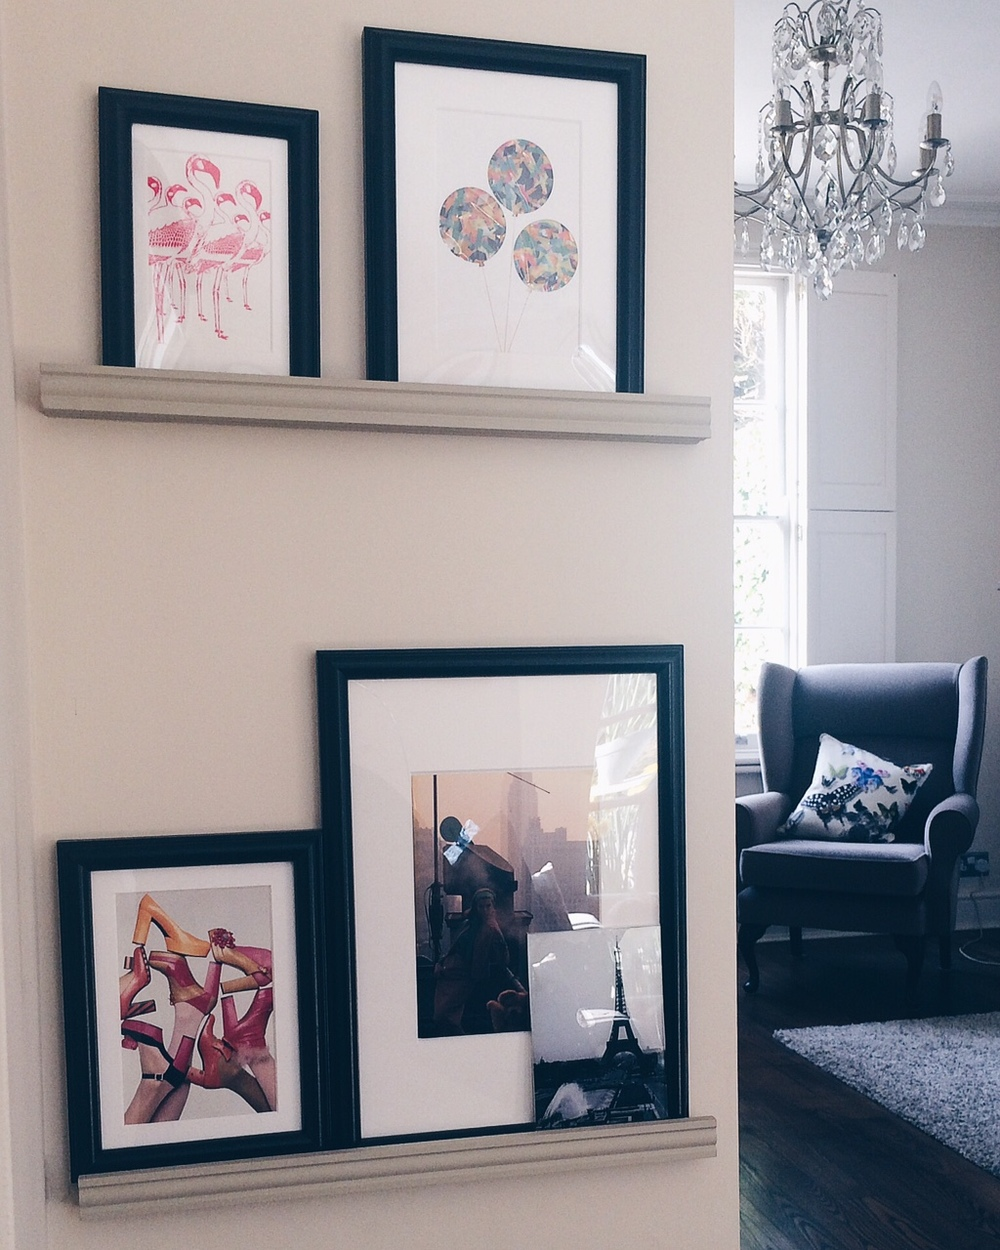 My DIY picture ledges at home, painted in 'Fawn' by Farrow & Ball. These are 'Marietorp' frames with mounts by Ikea.